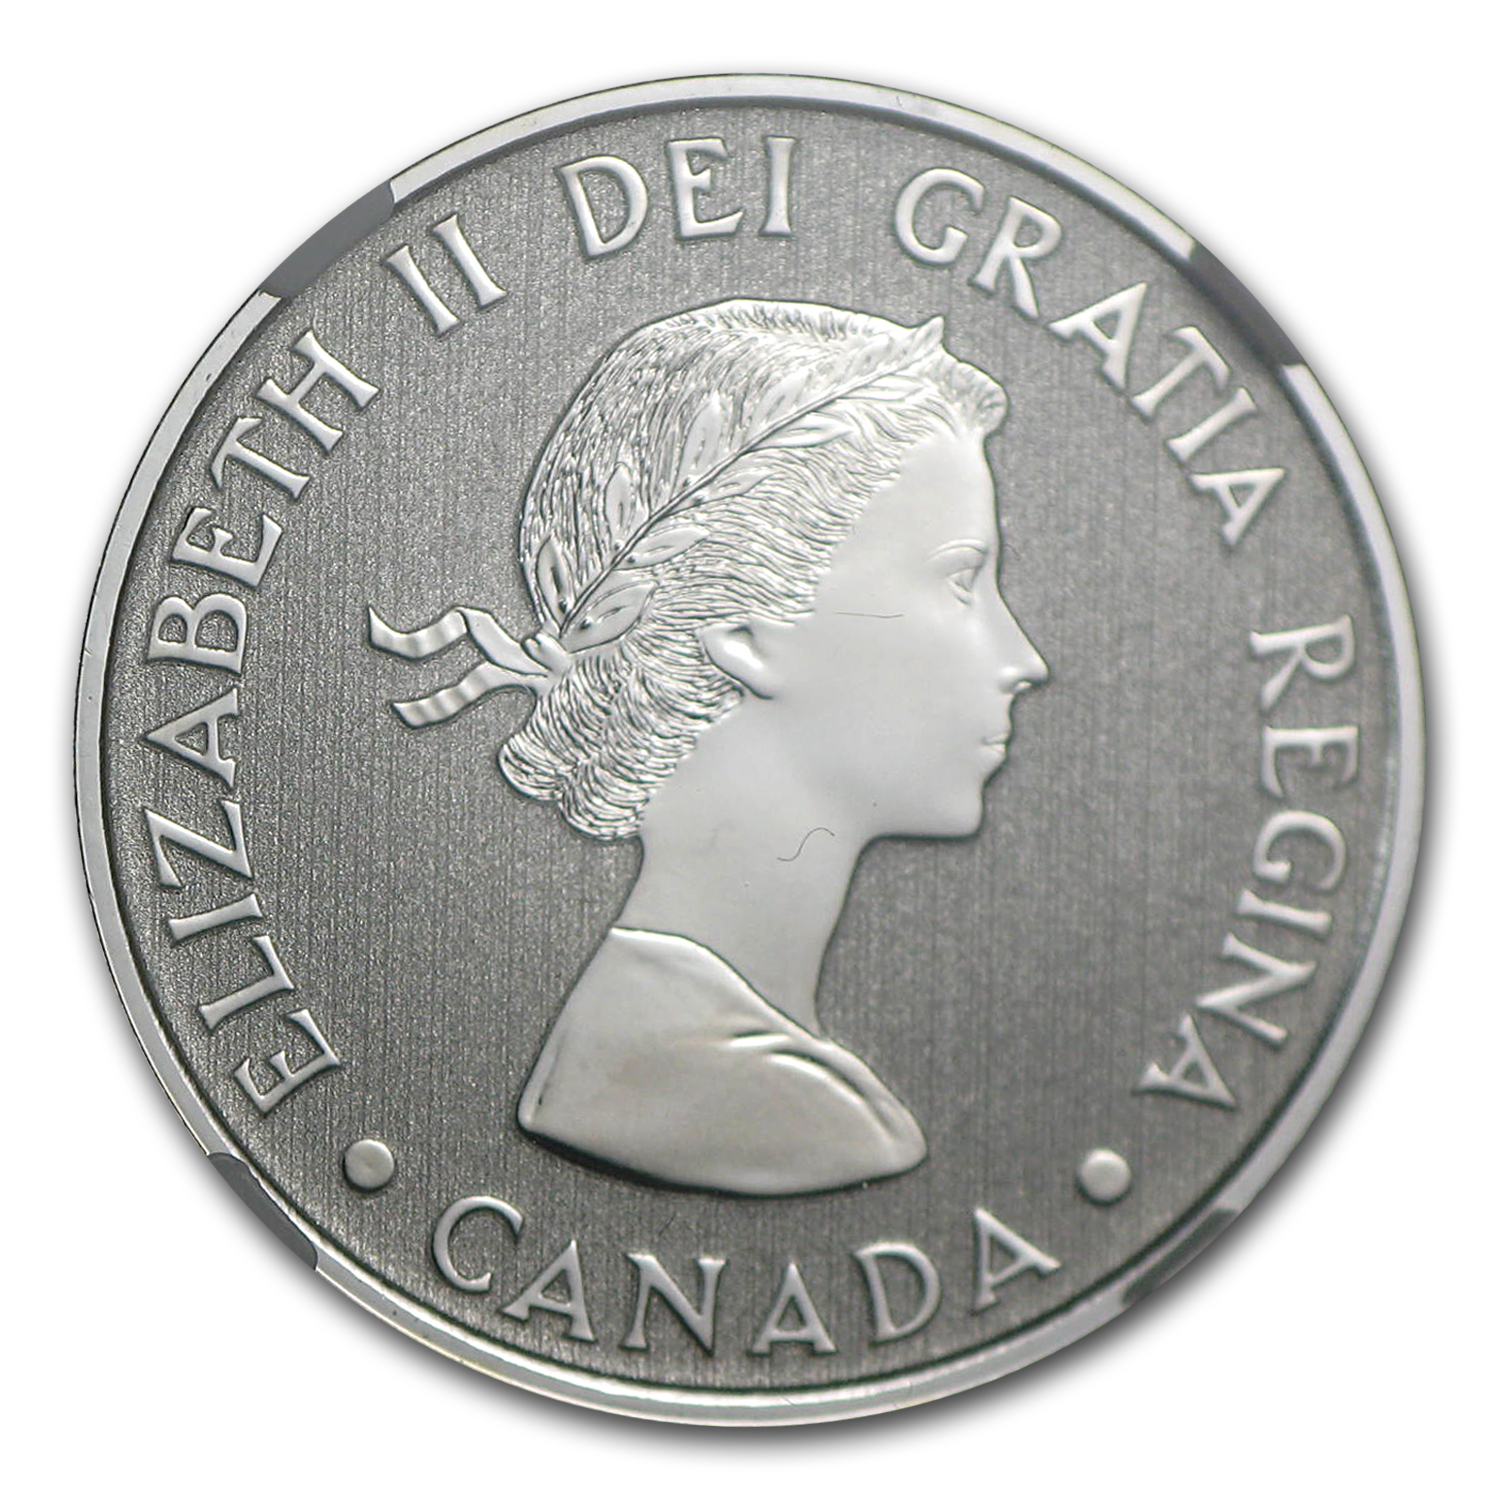 2012 Canada 1/4 oz Silver $20 Diamond Jubilee SP-70 NGC